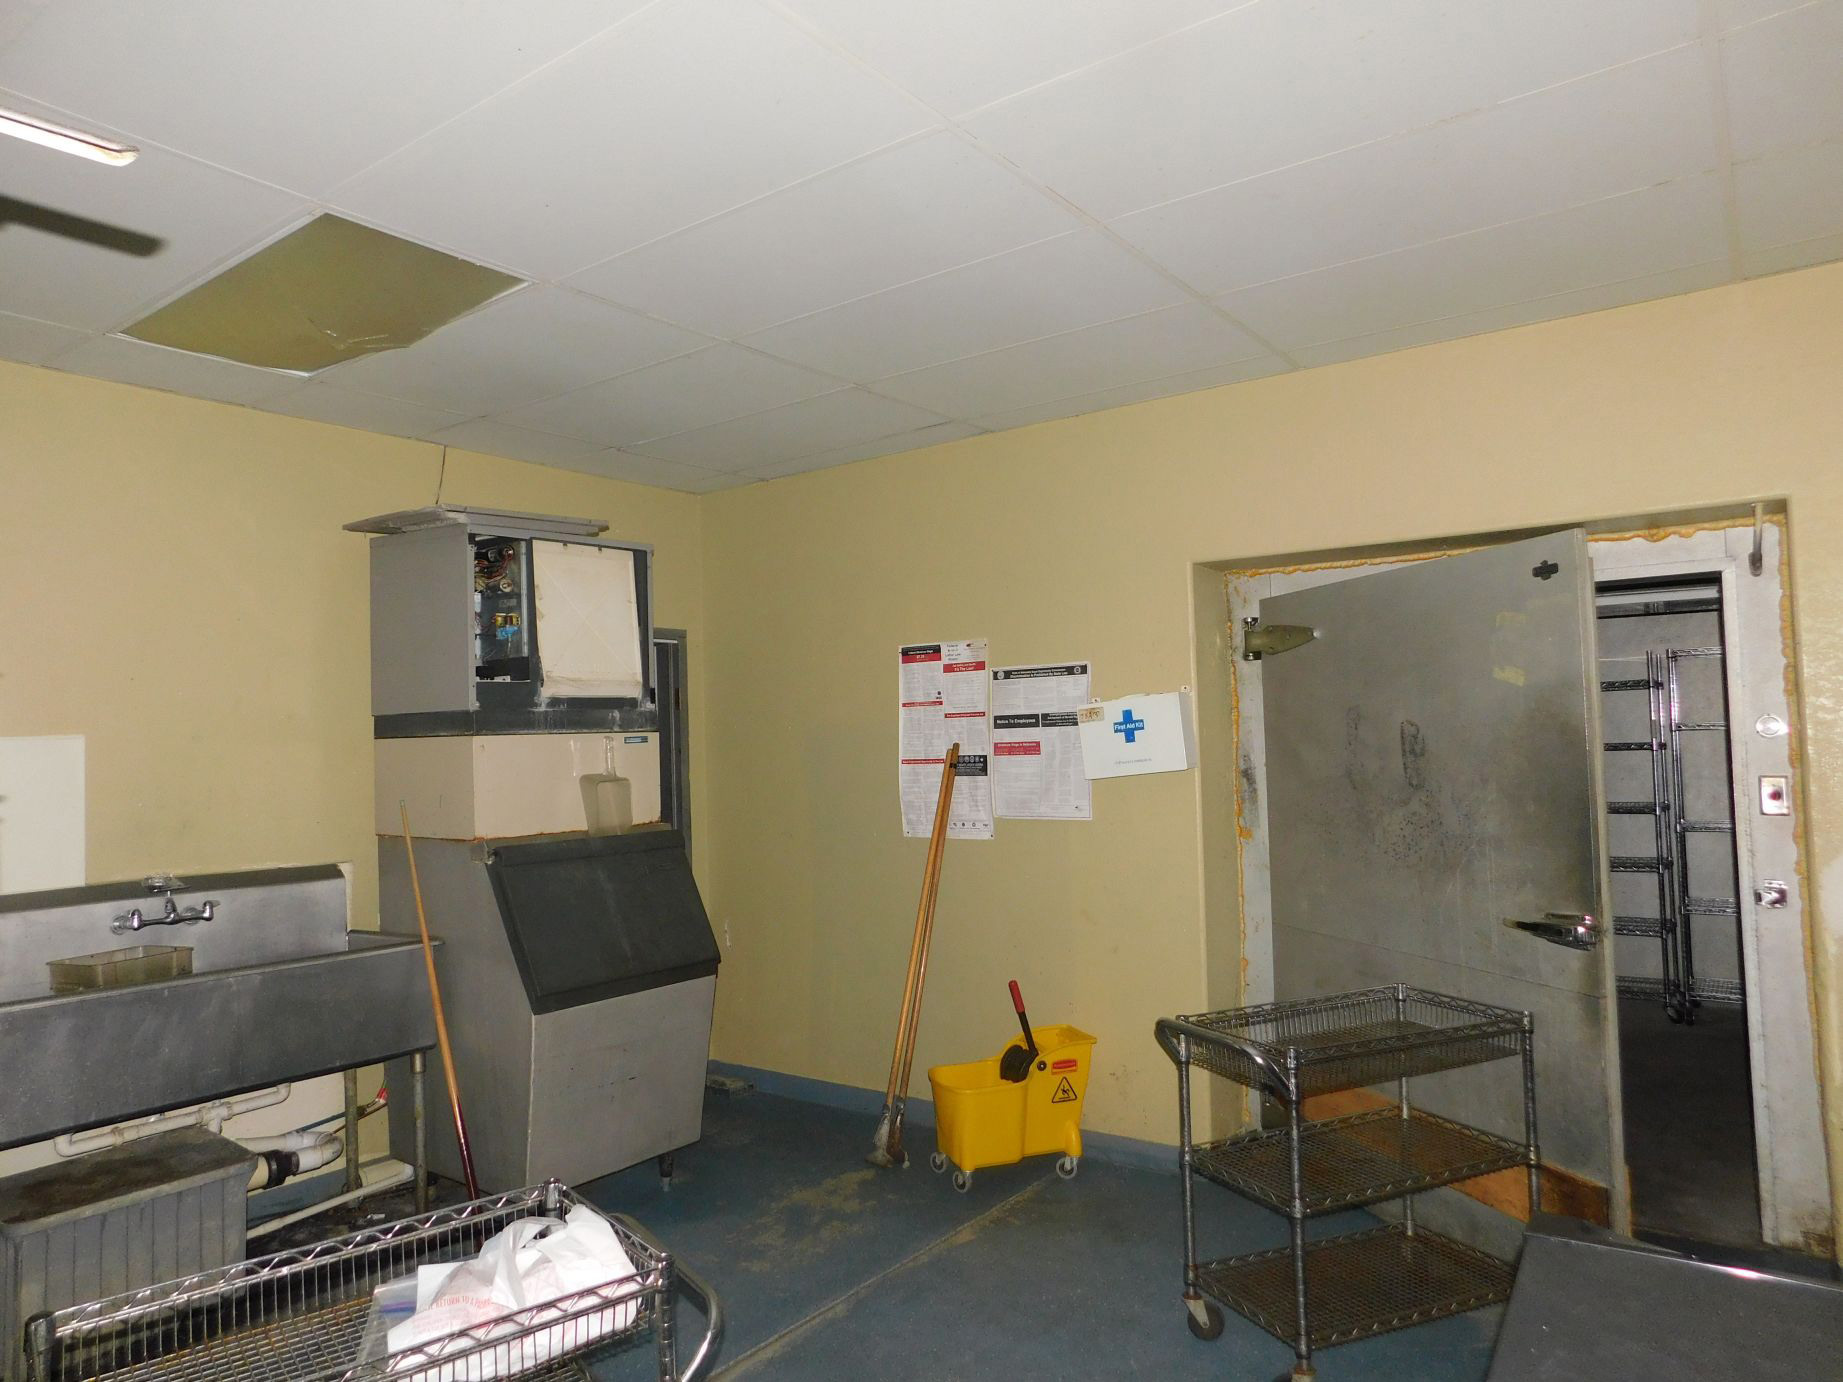 Parcel-3-kitchen-area-(4).jpg